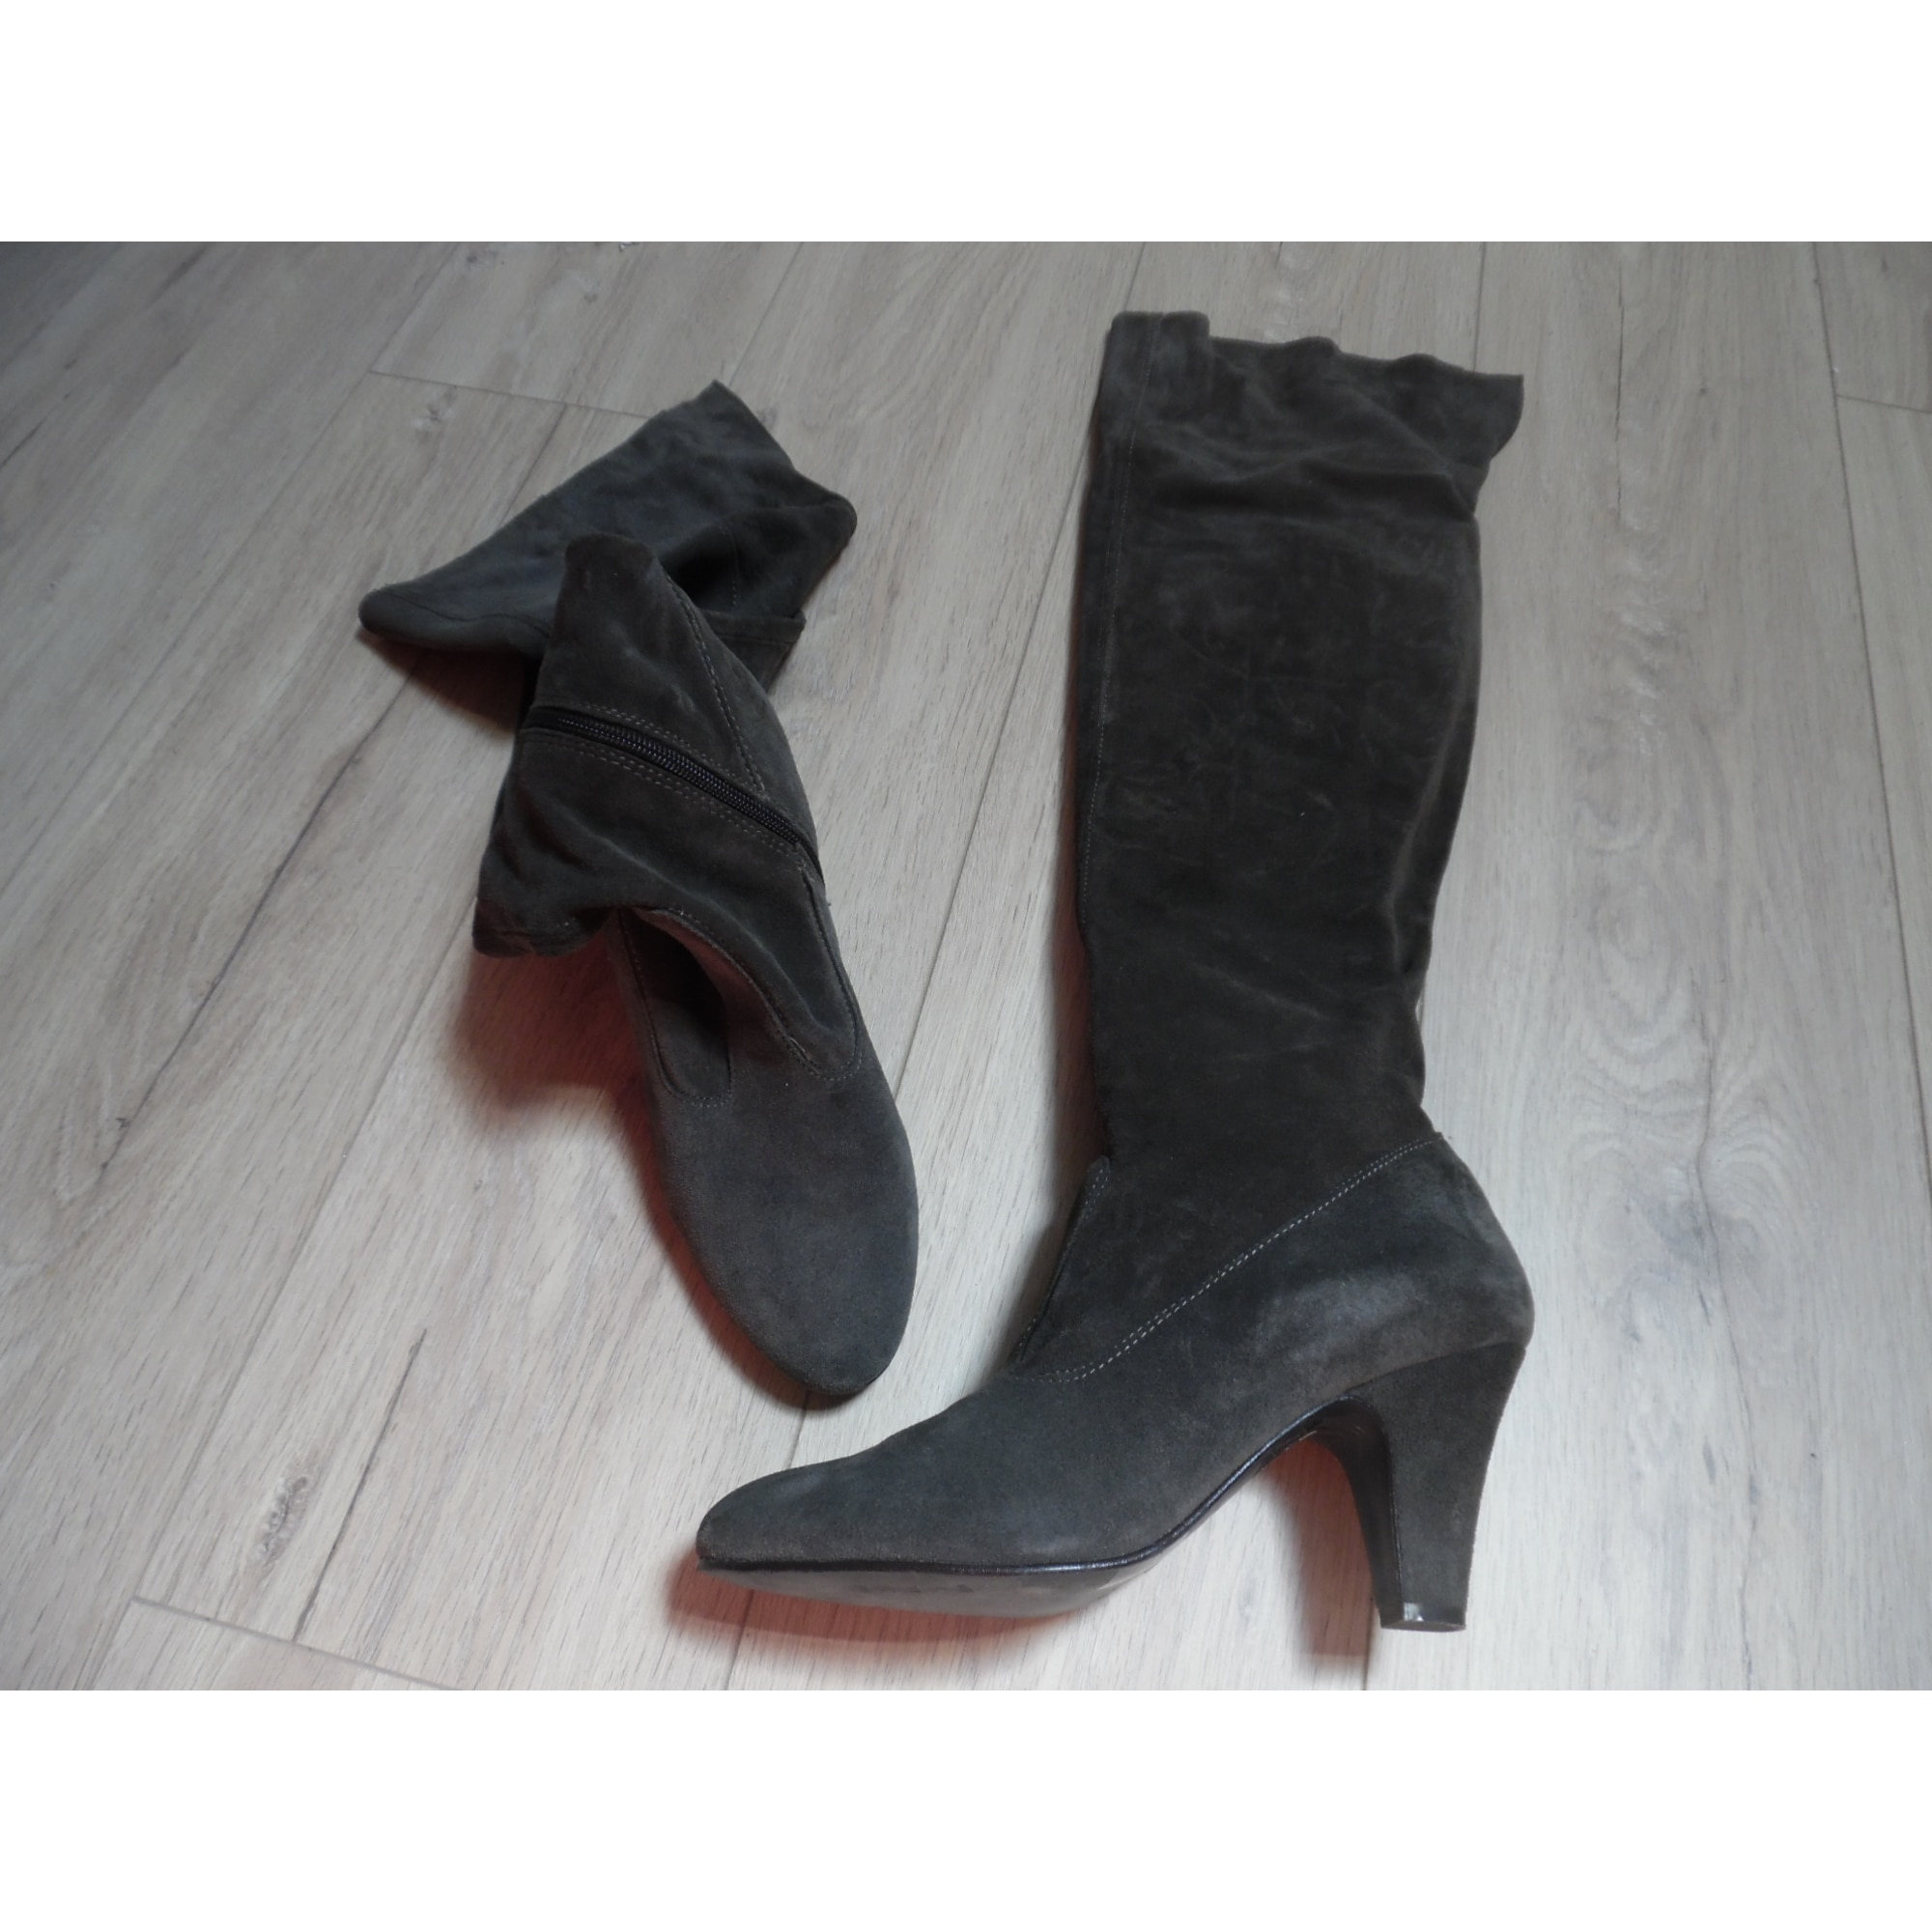 Bottes cuissards ANDRÉ Gris, anthracite